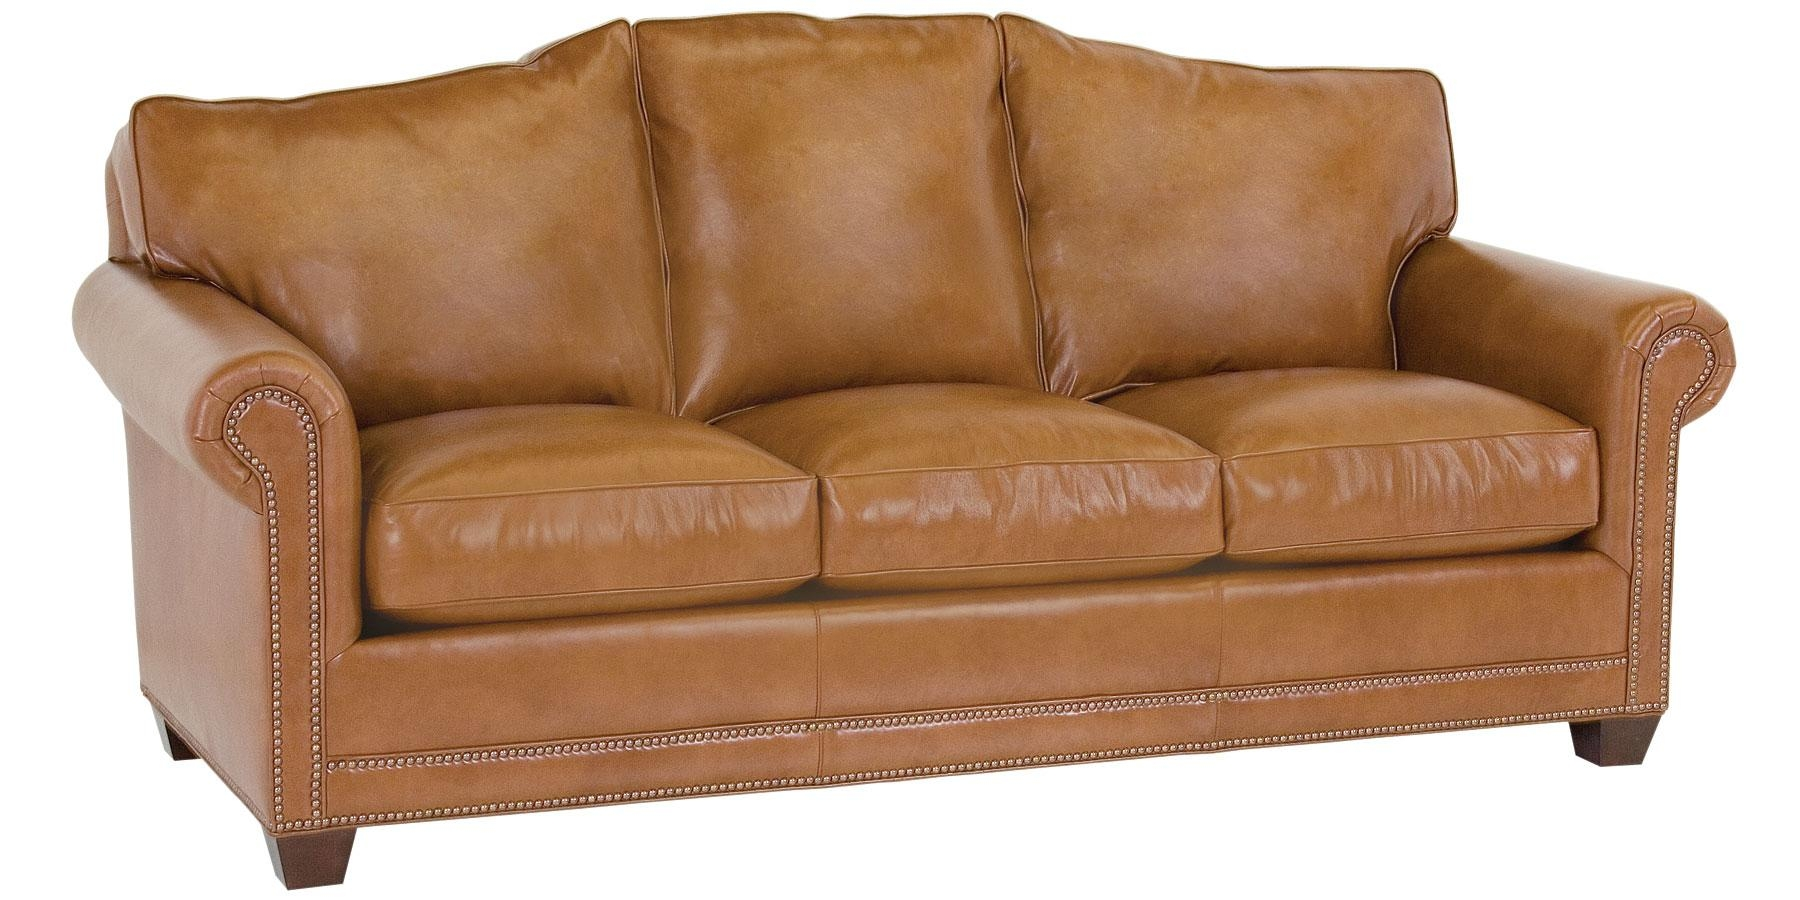 Camel Color Leather Sofa With Ideas Gallery 19338 | Kengire With Regard To Camel Colored Leather Sofas (View 3 of 20)